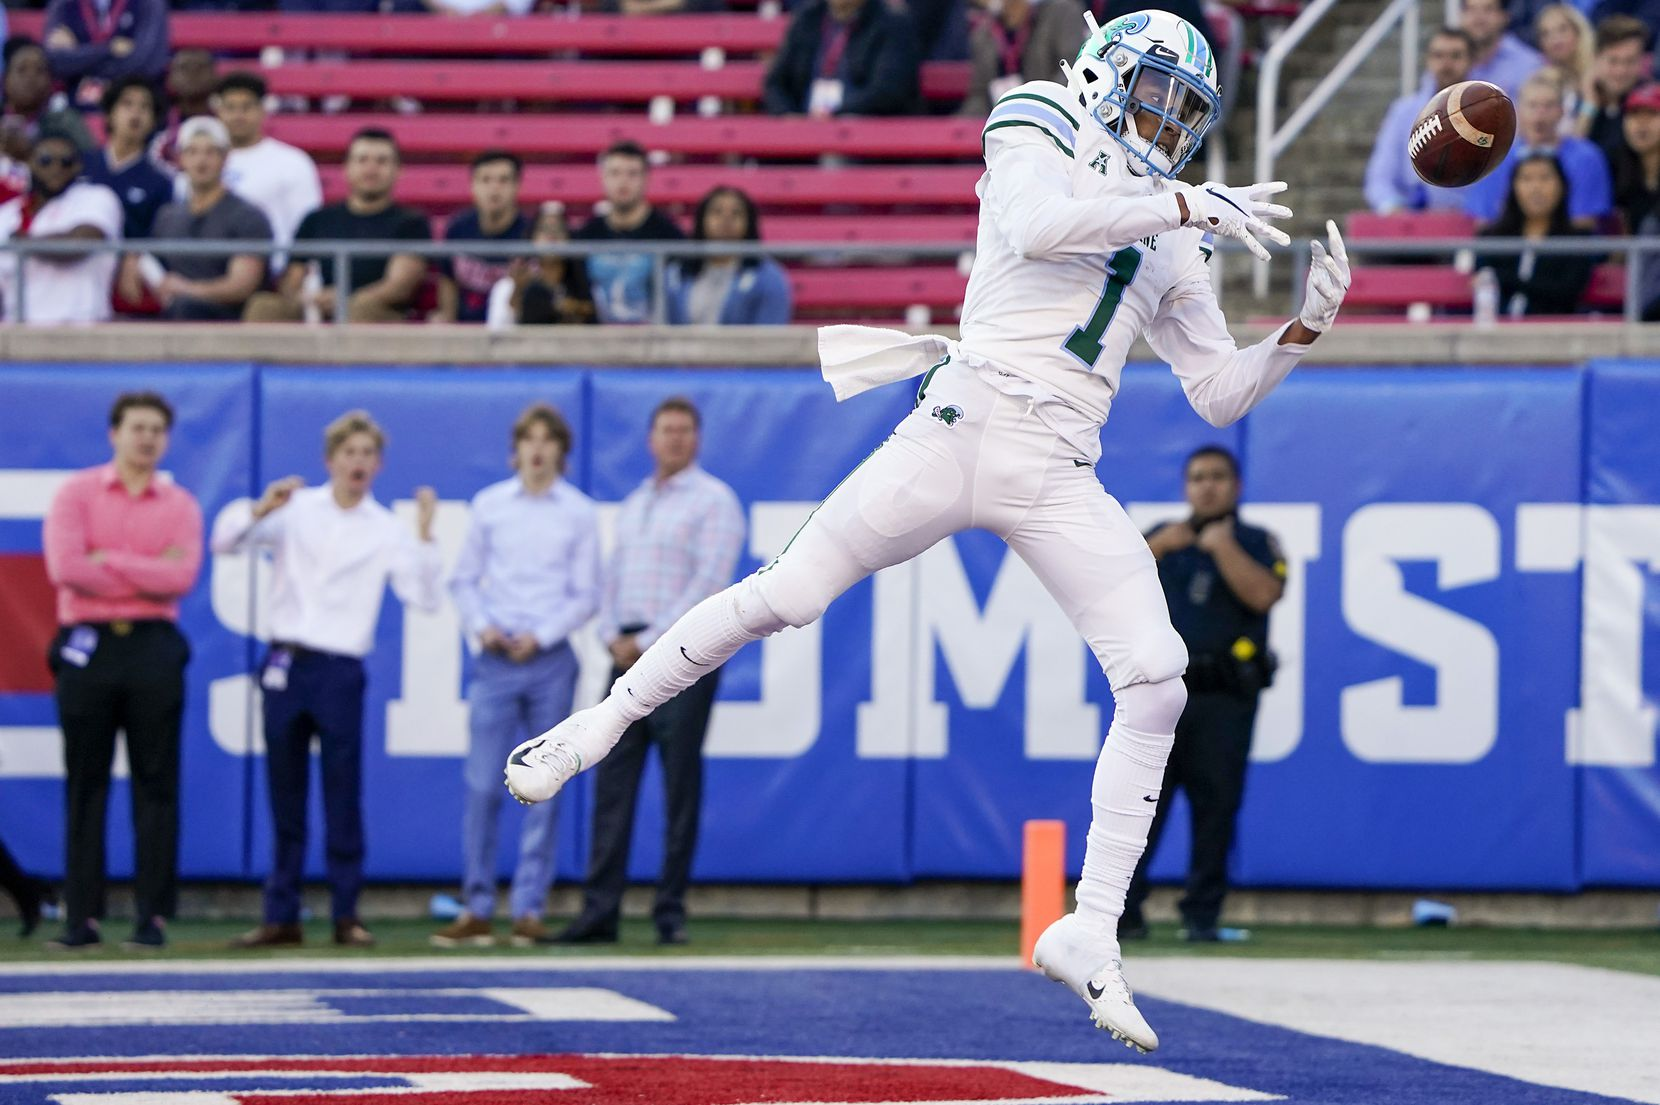 Tulane wide receiver Jalen McCleskey (1) canÕt make the catch on a pass in the end zone during the first half of an NCAA football game against SMU at Ford Stadium on Saturday, Nov. 30, 2019, in Dallas.